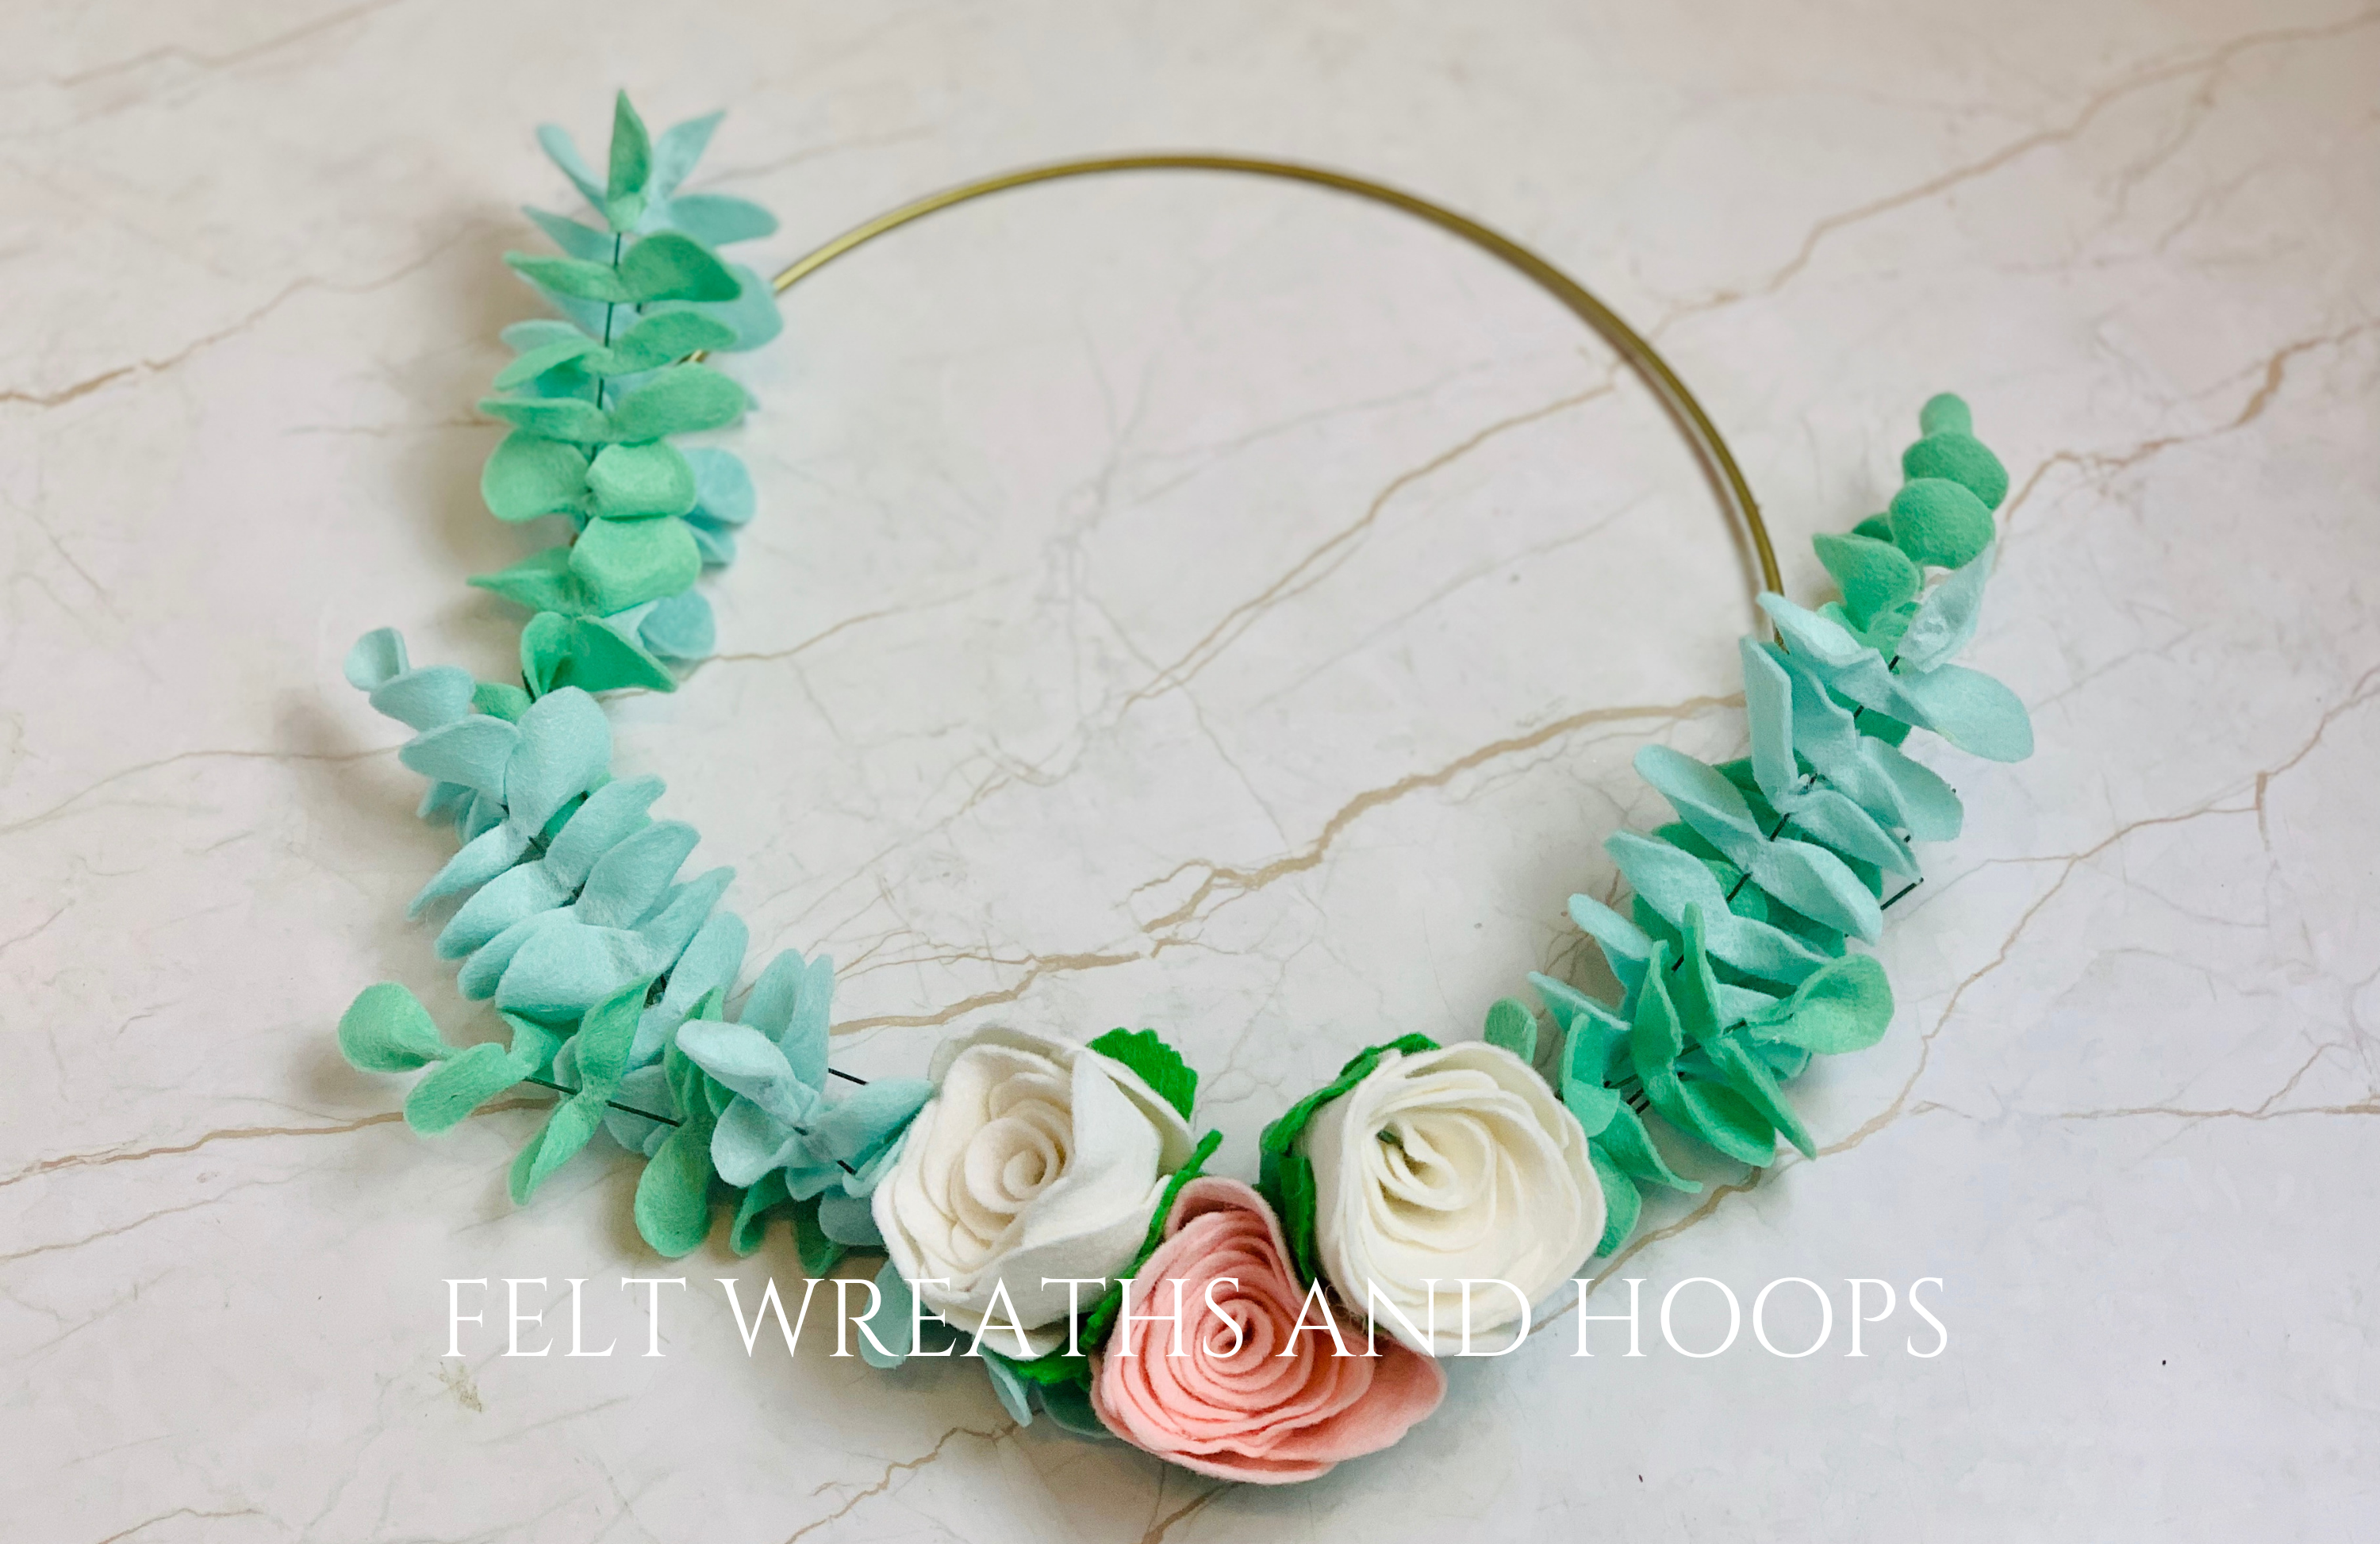 Felt Flower Wreaths & Hoops